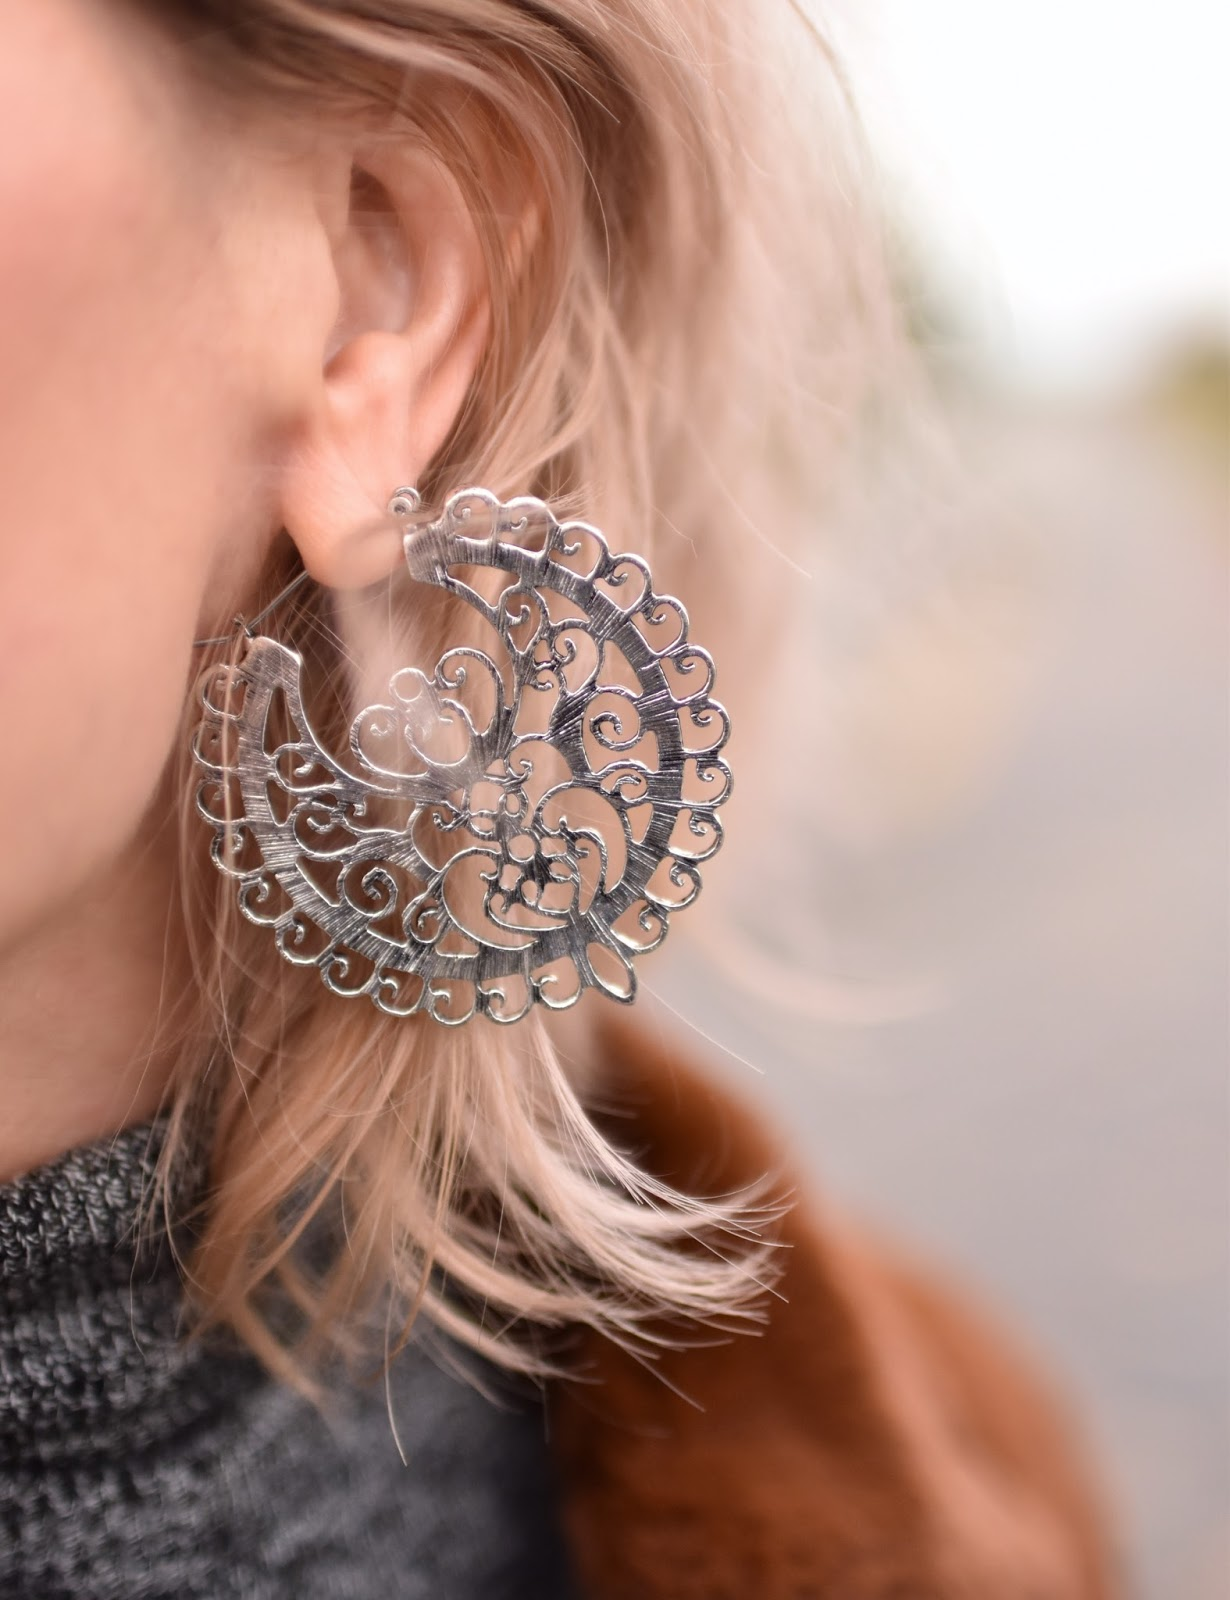 Monika Faulkner outfit inspiration - filigree hoop earring